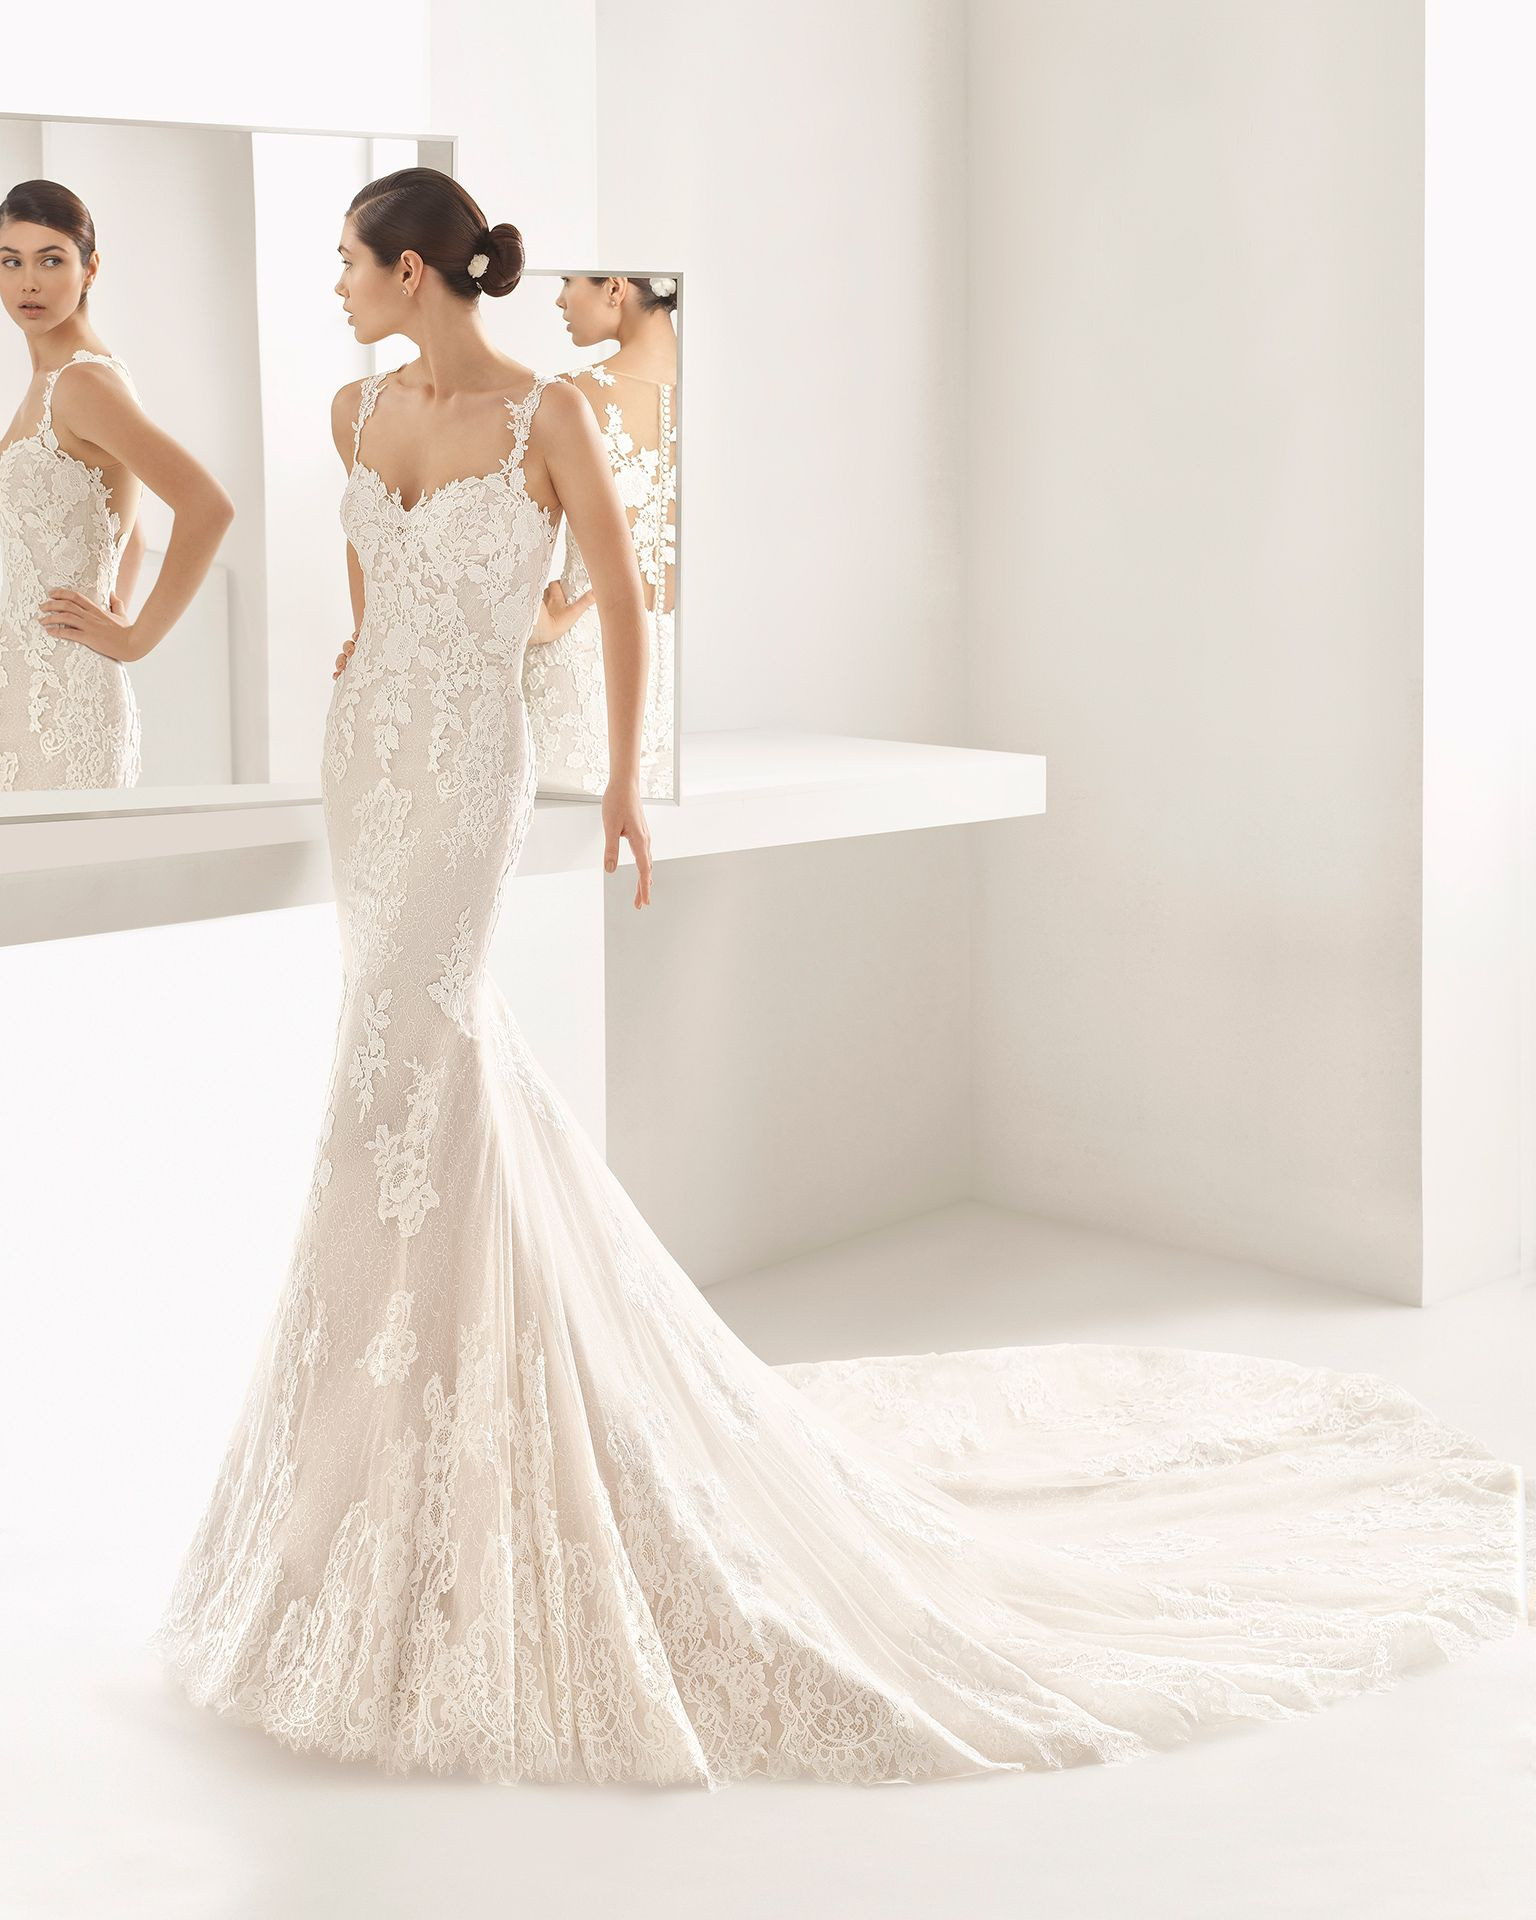 This guipure mermaid wedding dress exudes sensuality, combining a